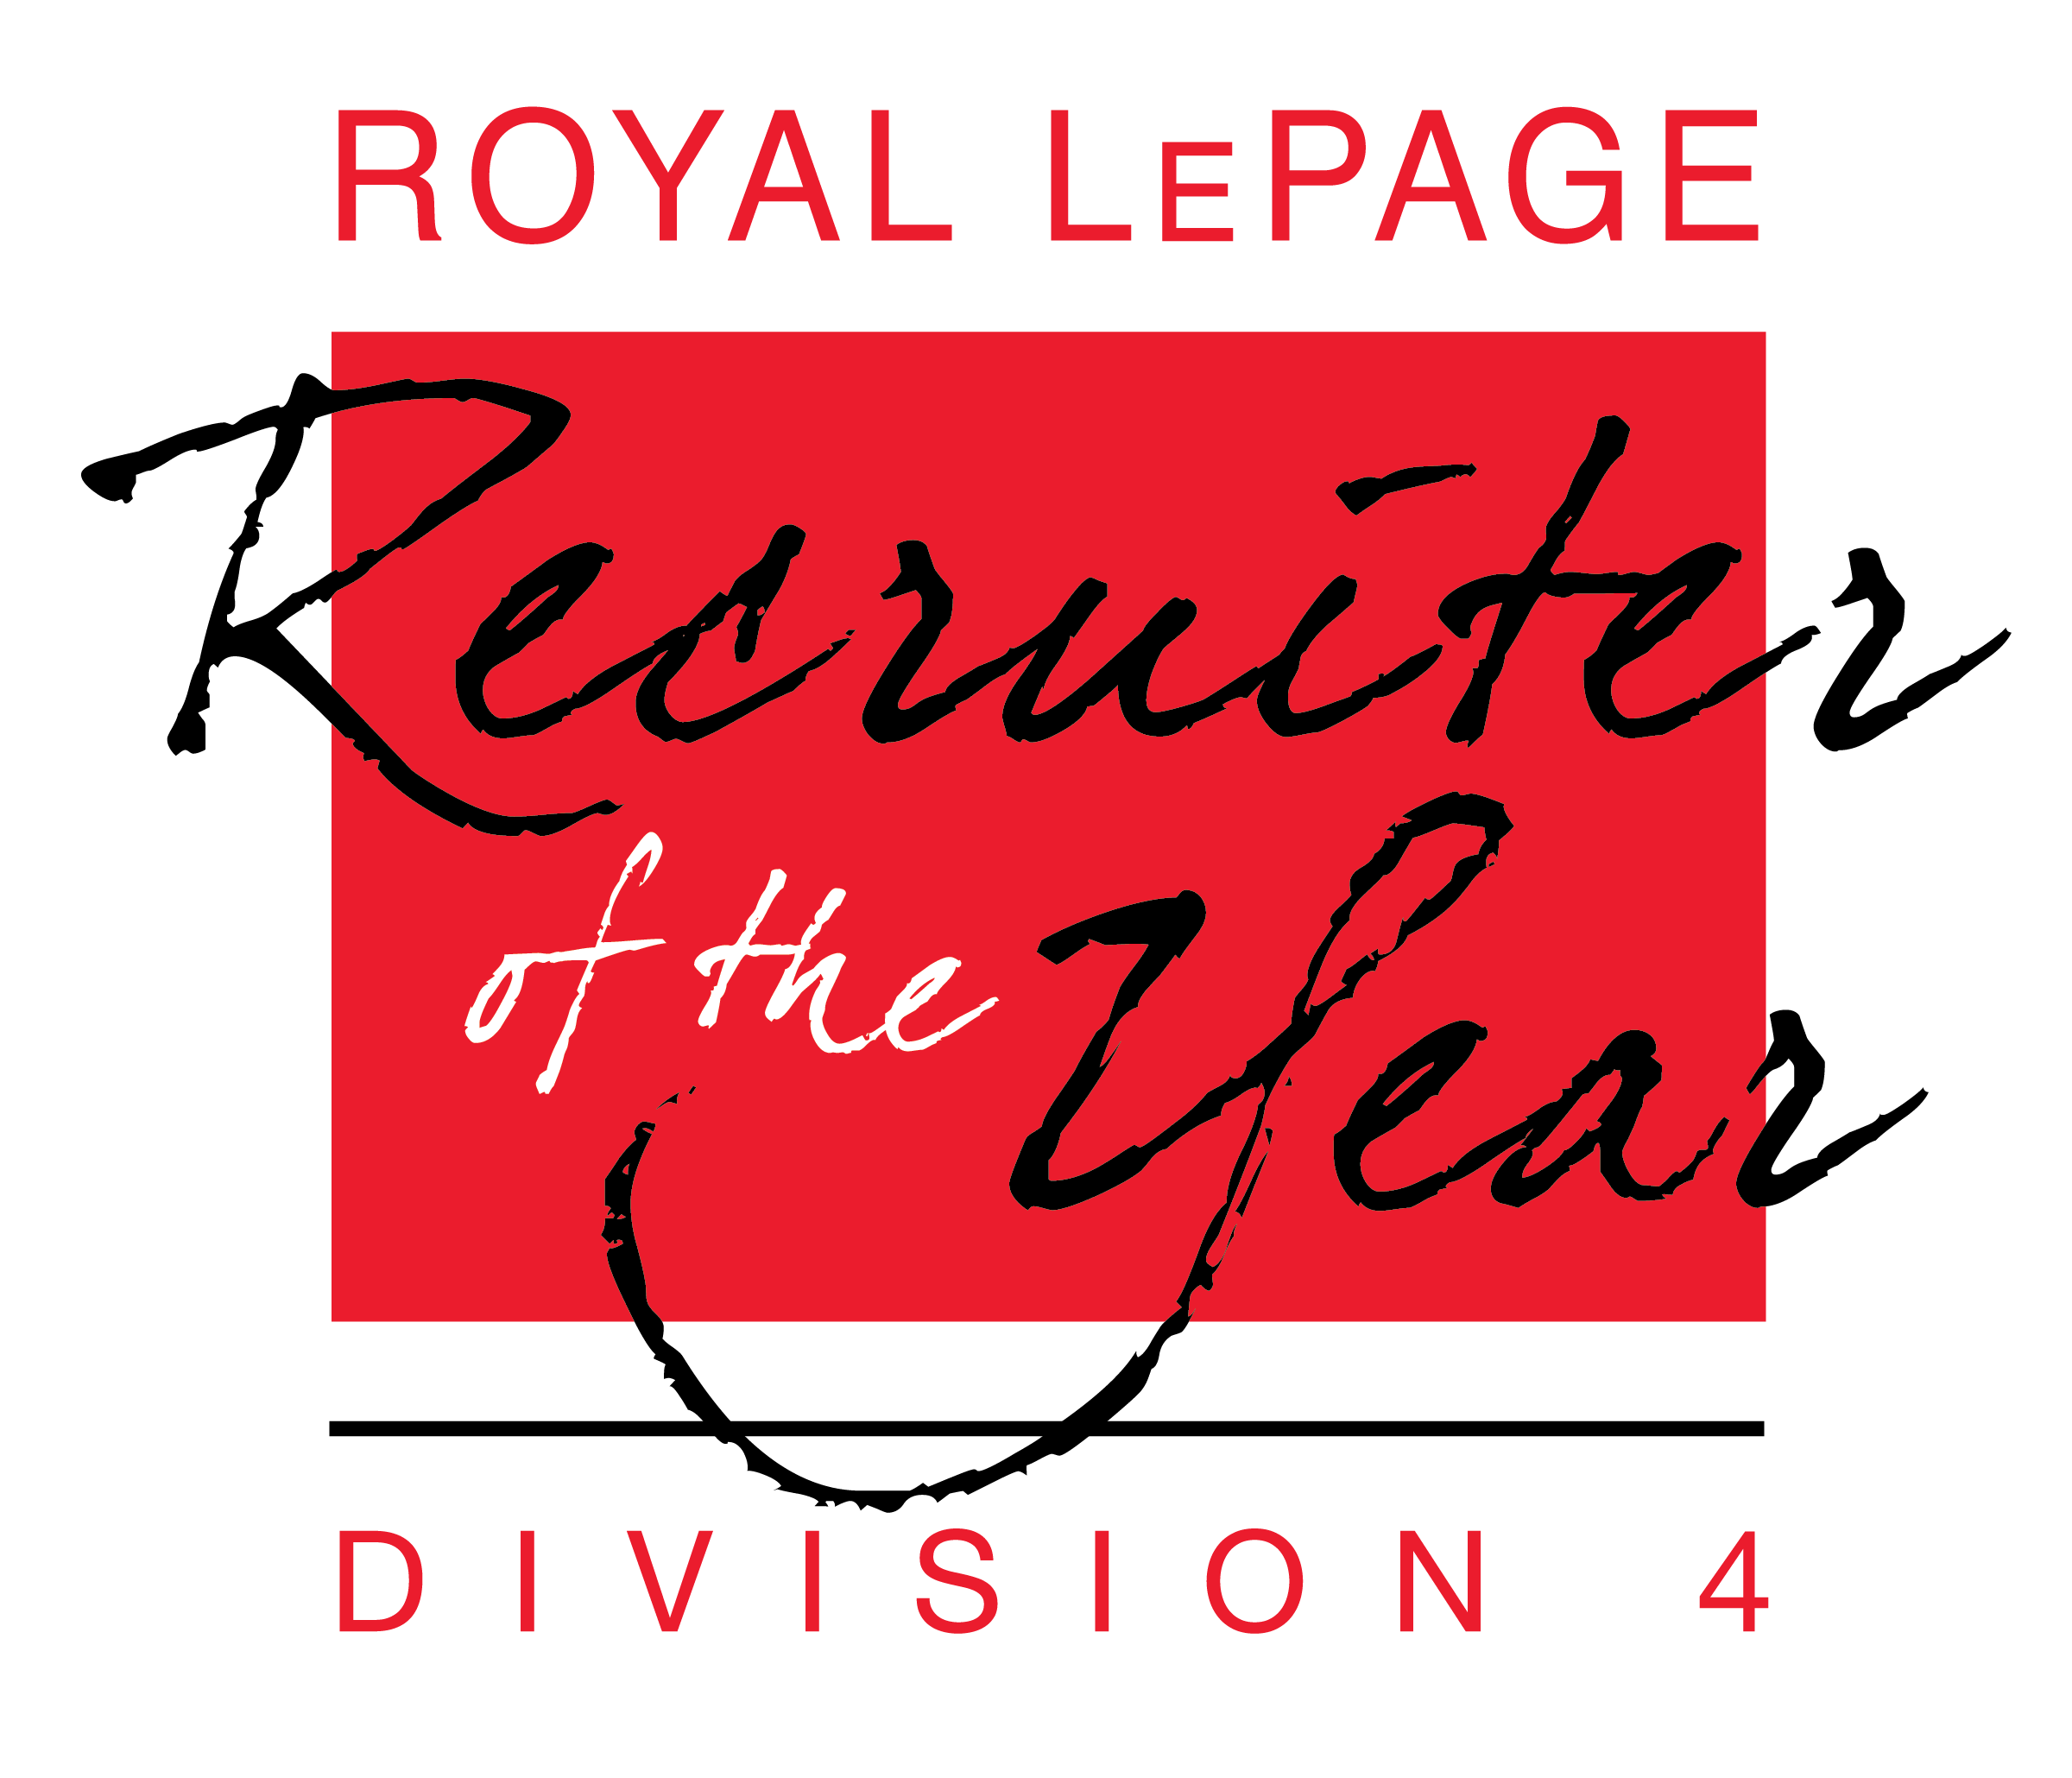 Recruiter of the Year - Division 4 - National